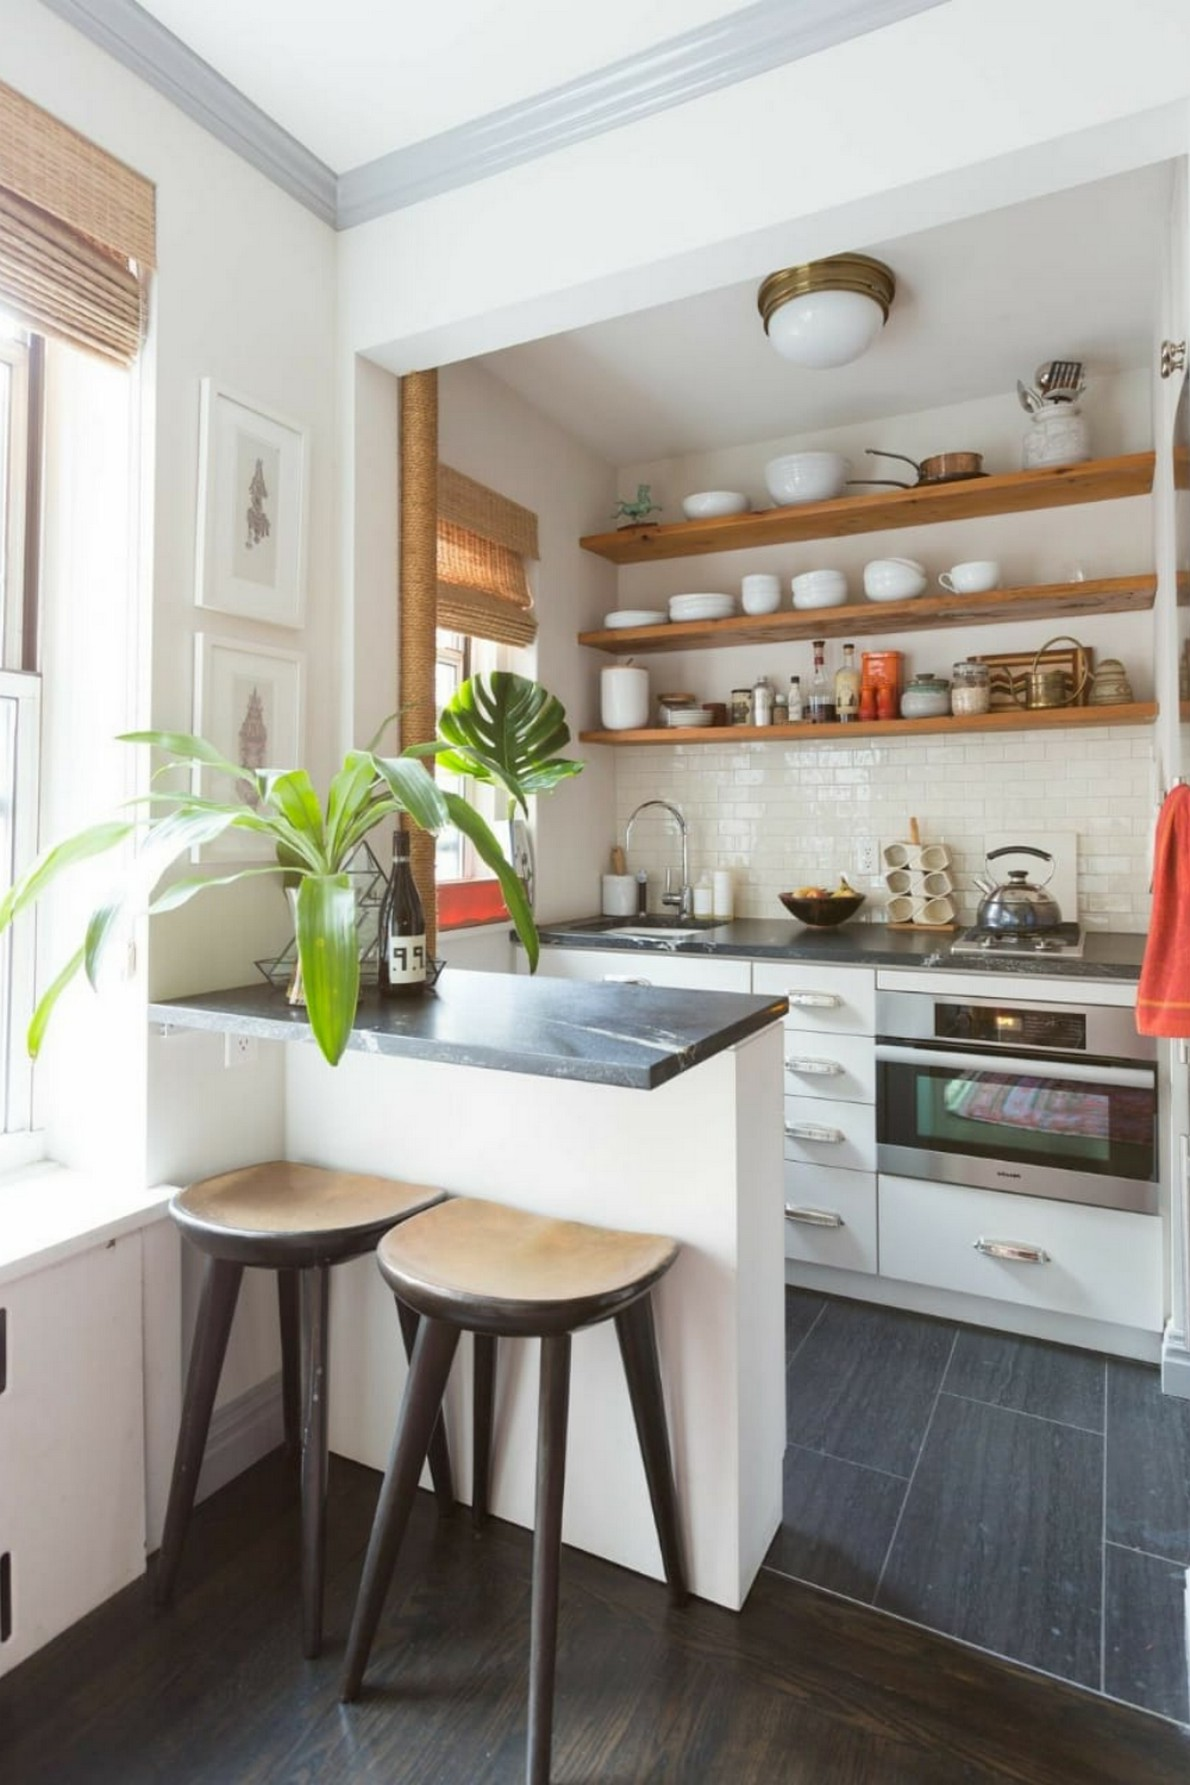 86 Some Small Kitchen Ideas To Help You Do Up Your Kitchen 77